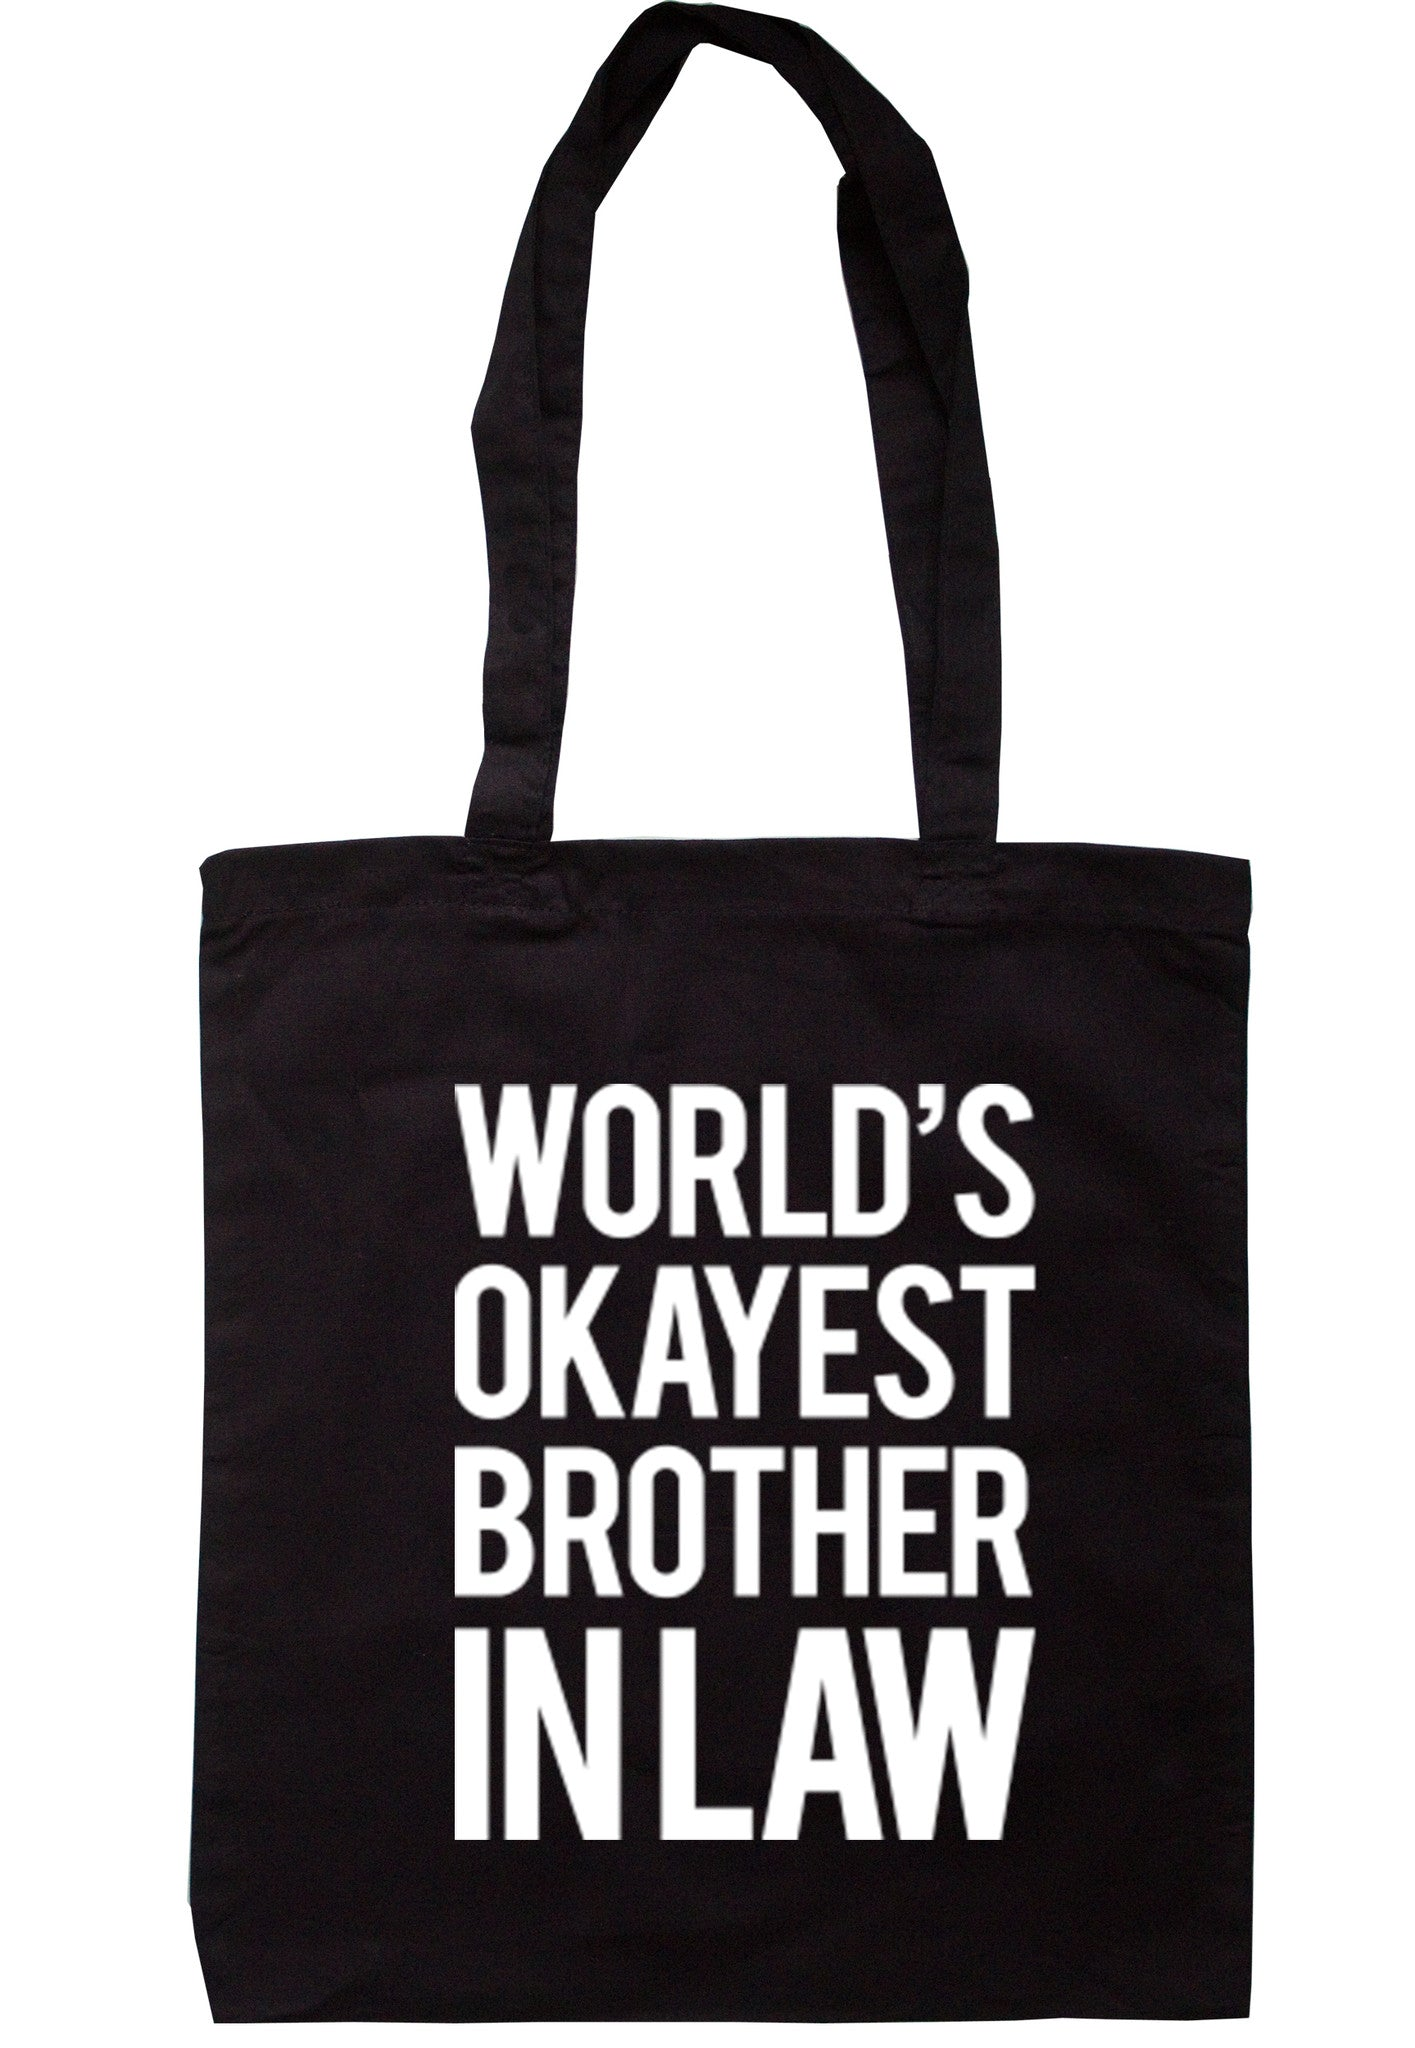 Worlds Okayest Brother In Law Tote Bag TB0033 - Illustrated Identity Ltd.